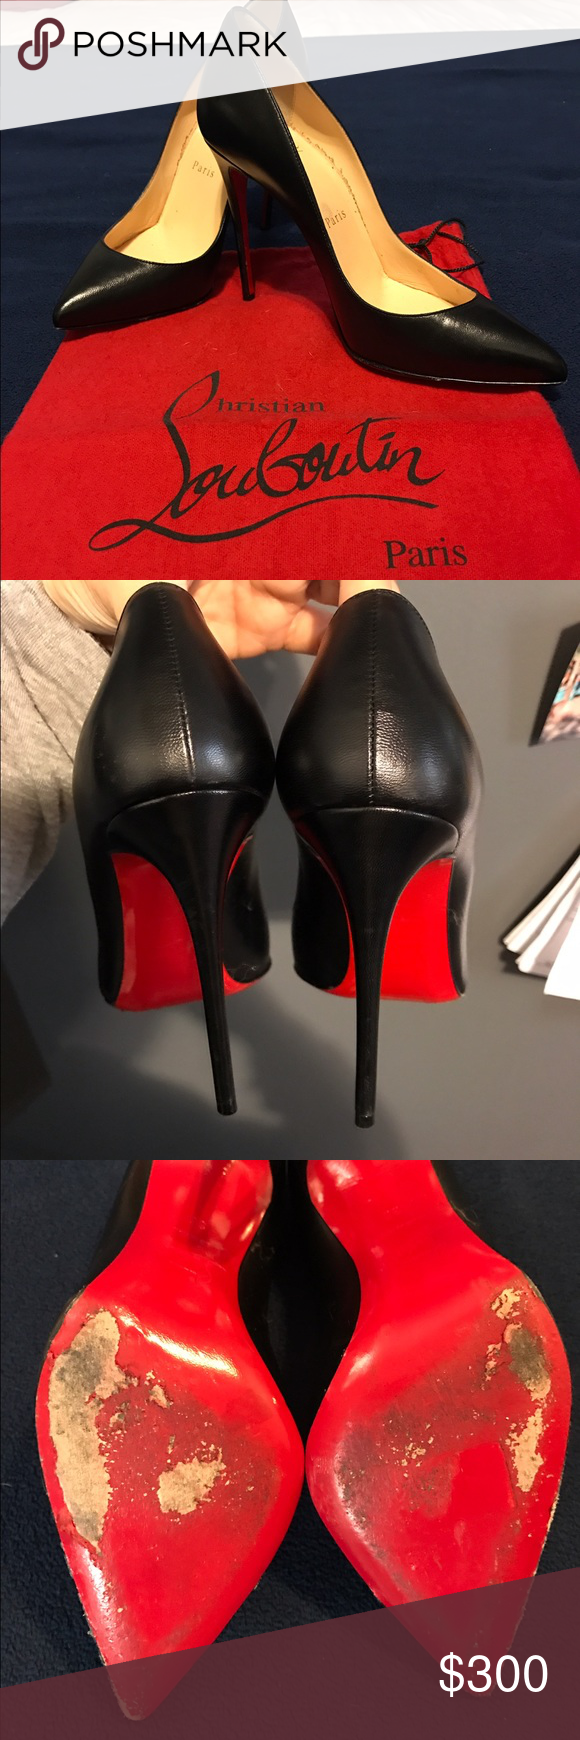 Christian Louboutin So Kate Scuffed bottom sole but otherwise insole and exterior is decent. Comes with dust bag. Authentic. 120mm, size 36 (6 US) Christian Louboutin Shoes Heels